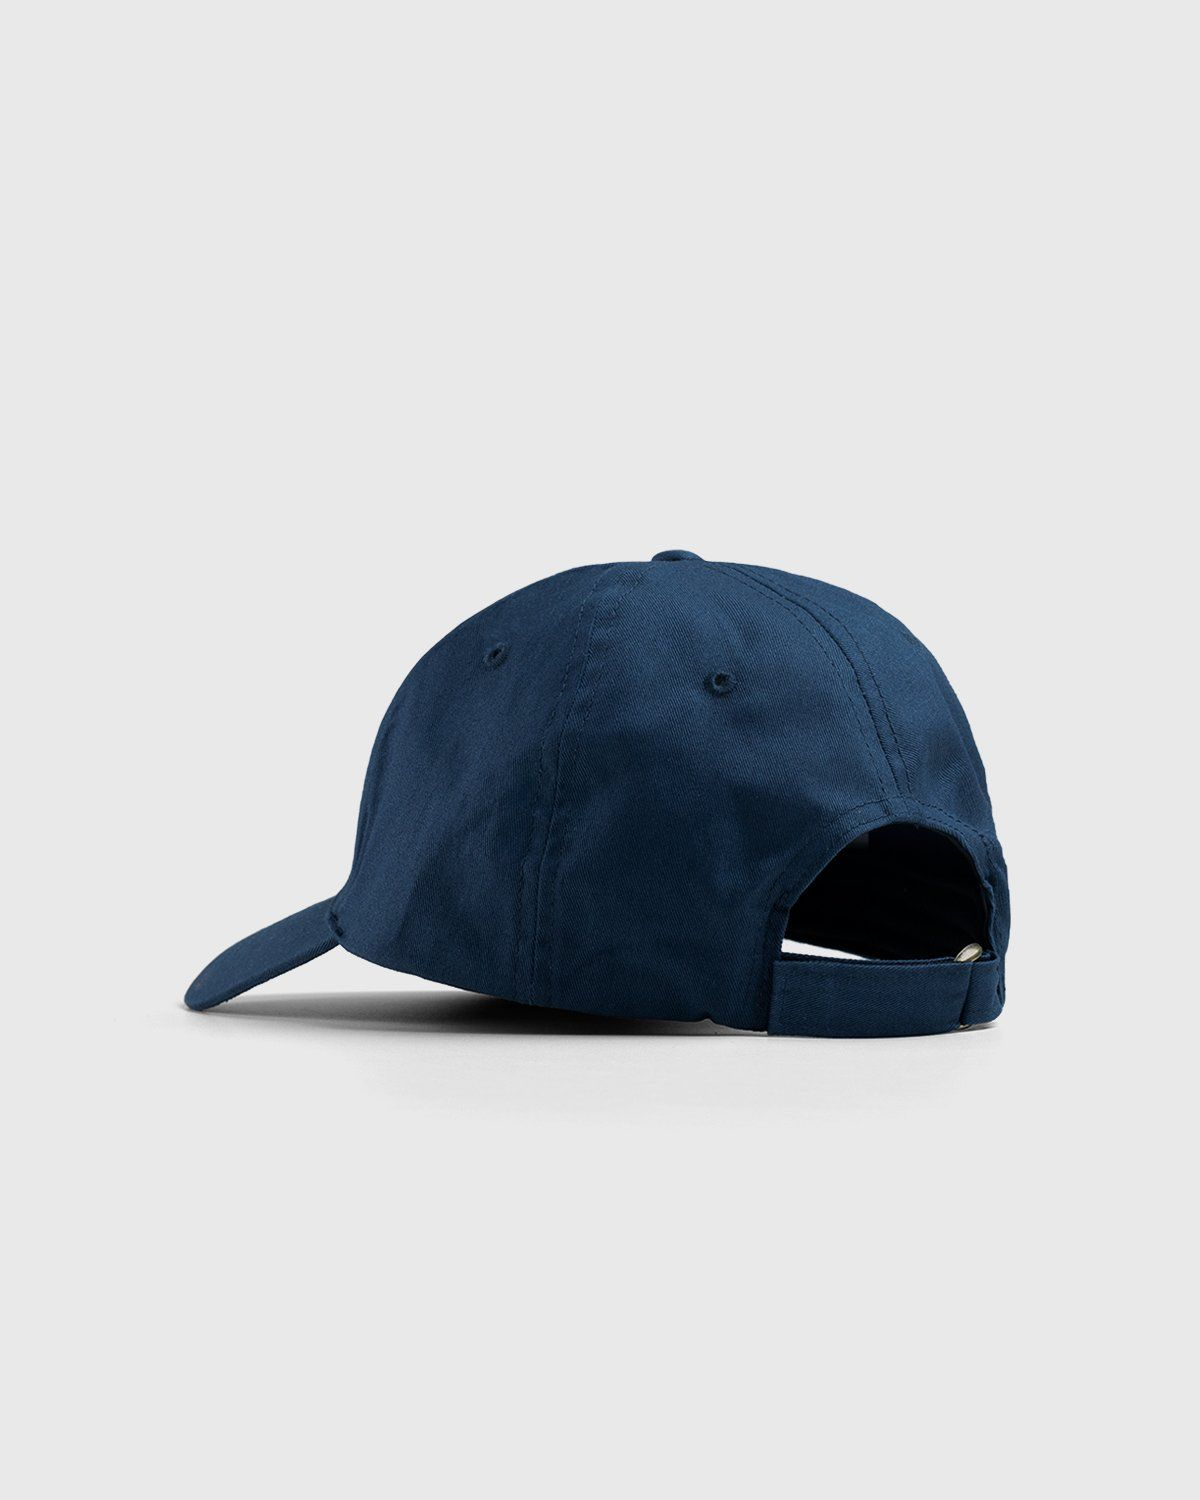 Noon Goons – Boys and Girls Hat Blue - Image 2